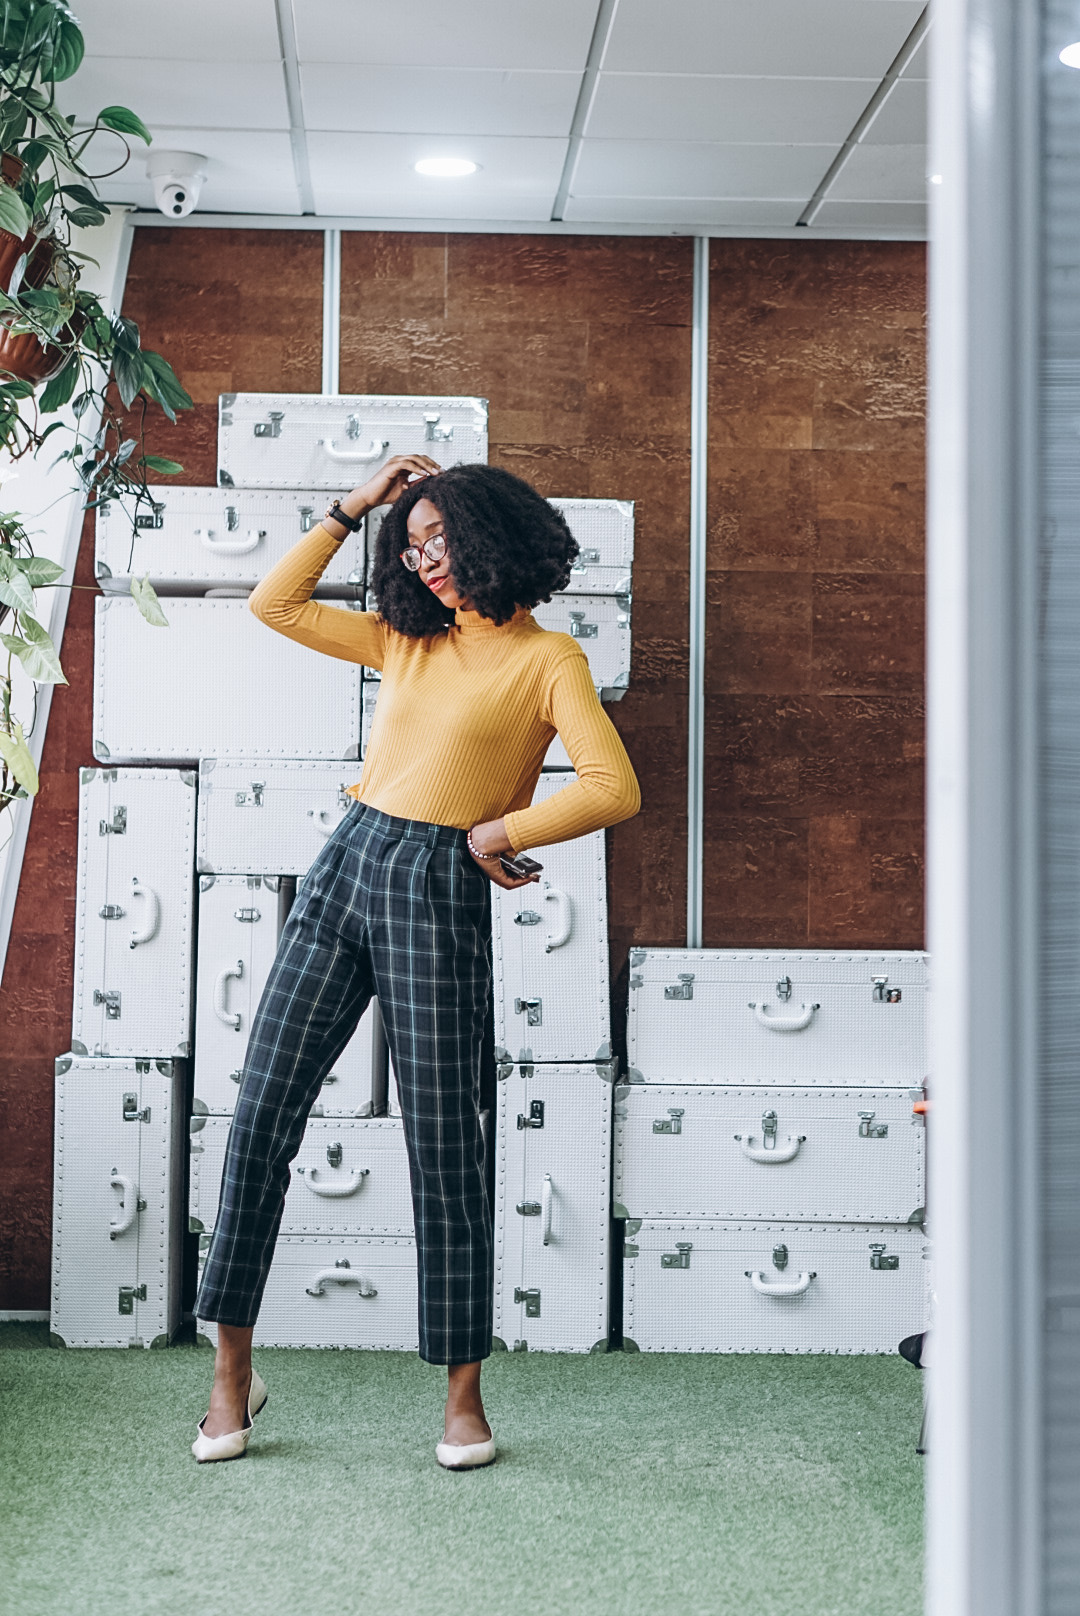 Nigerian fashion blogger Cassie Daves wearing a yellow turtle neck and blue - green plaid cropped pants